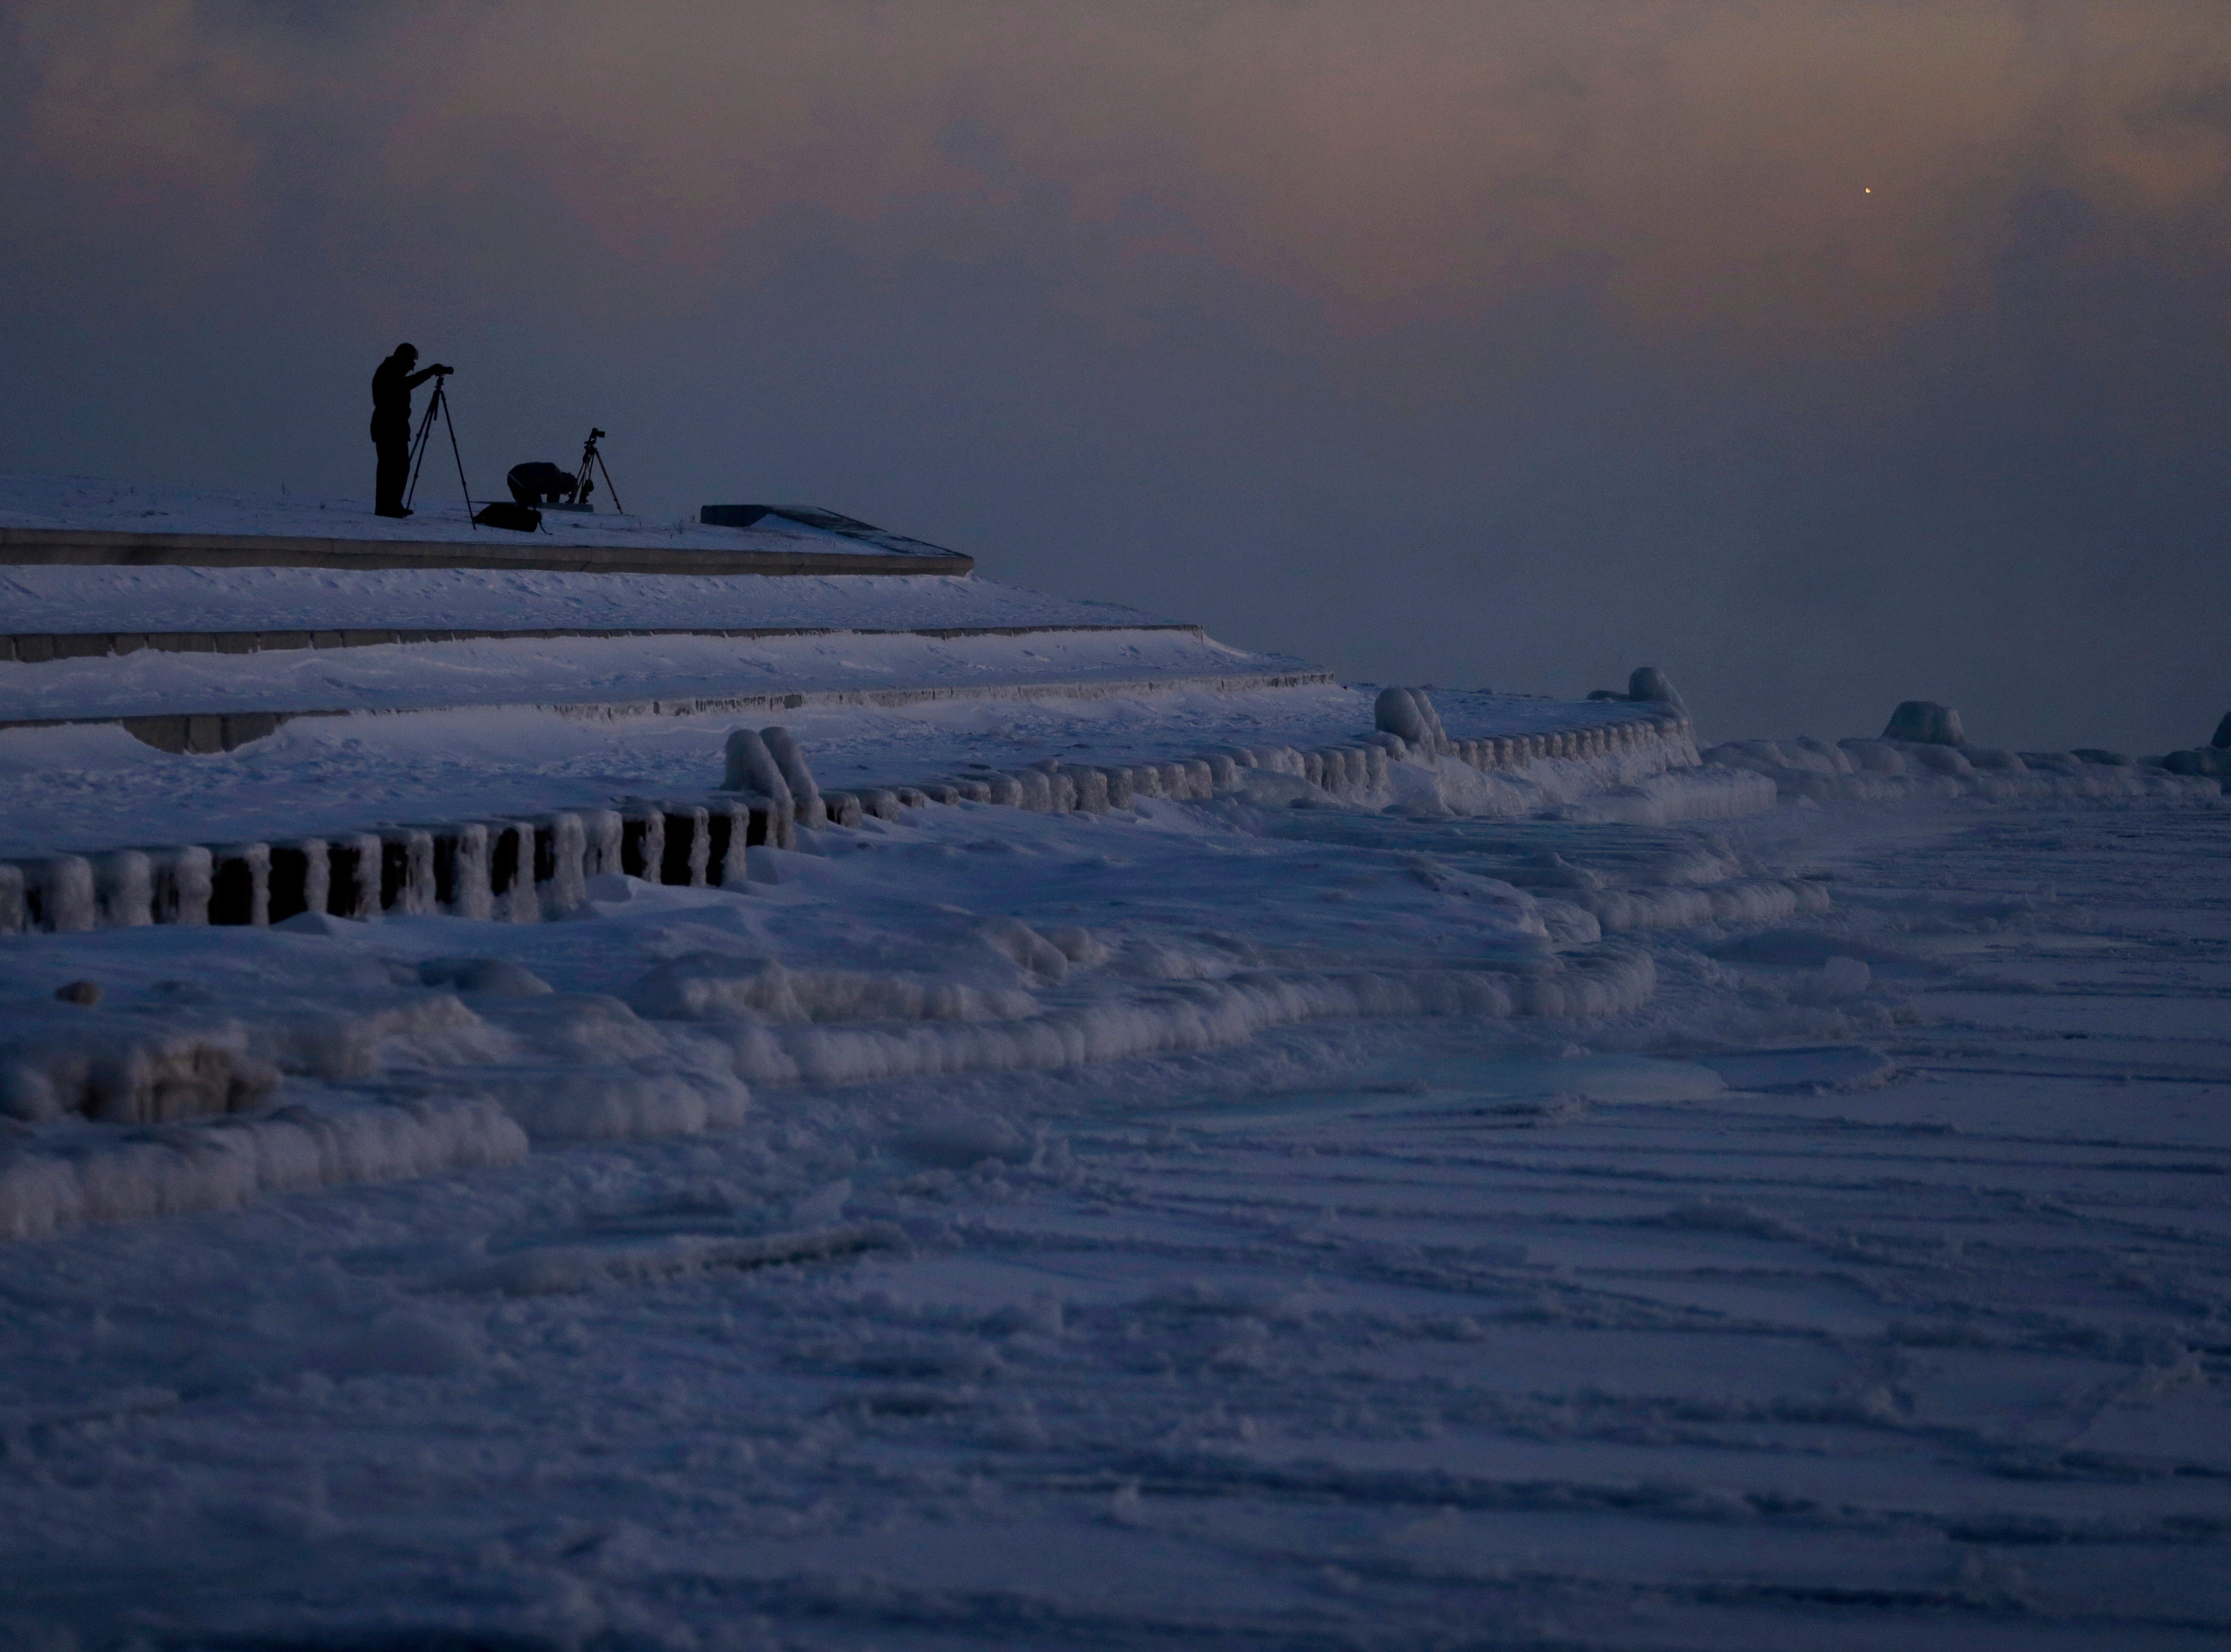 Photographers set up tripods along the shore of Lake Michigan before sunrise, Thursday, Jan. 31, 2019, in Chicago. The painfully cold weather system that put much of the Midwest into a historic deep freeze was expected to ease Thursday, though temperatures still tumbled to record lows in some places.